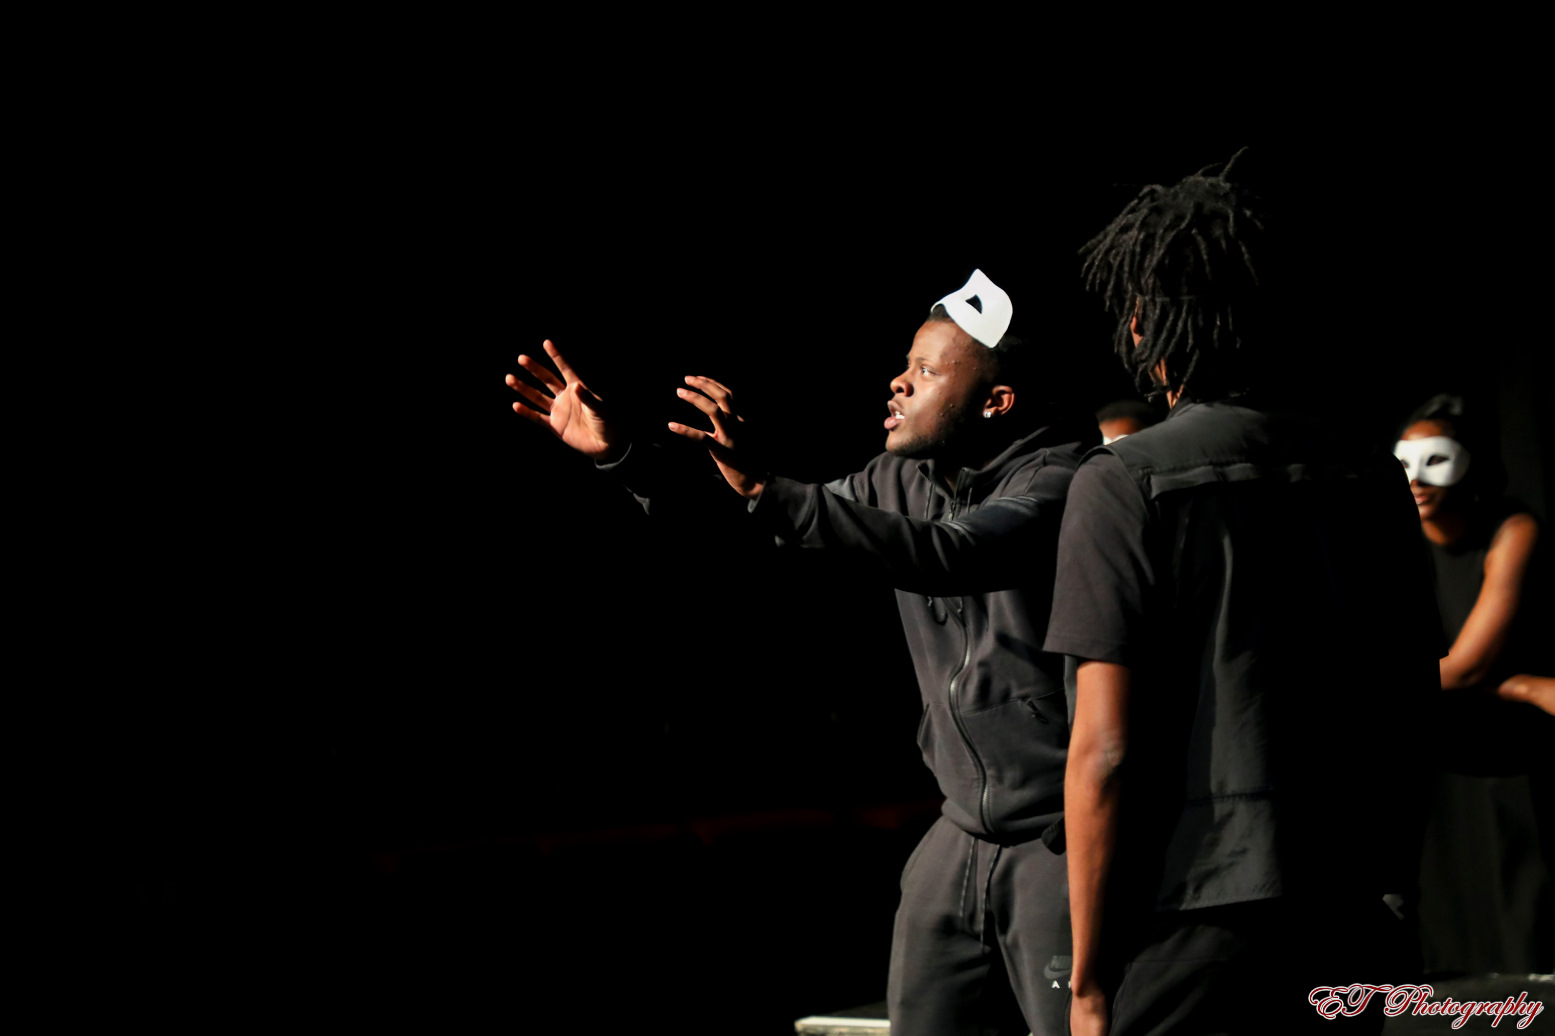 How you can give a boost to arts in criminal justice